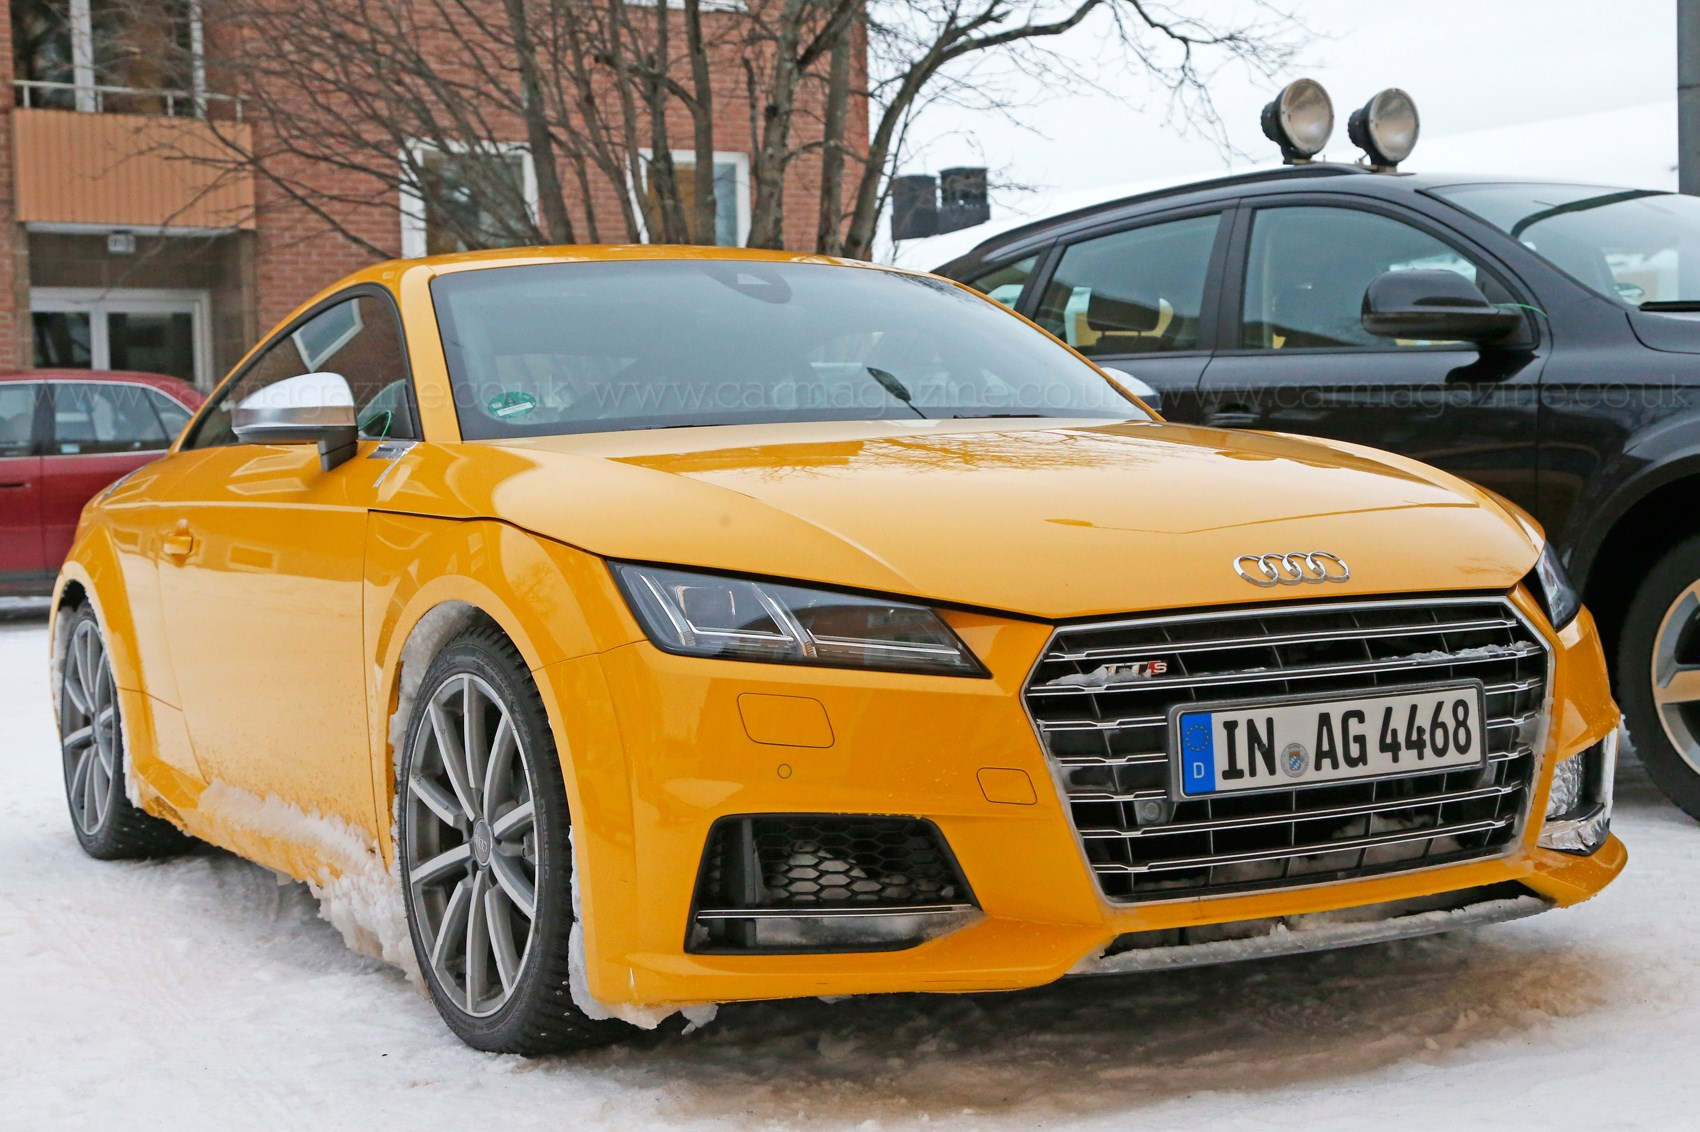 Audi Tt Rs 2016 To Be Available With A Manual Gearbox